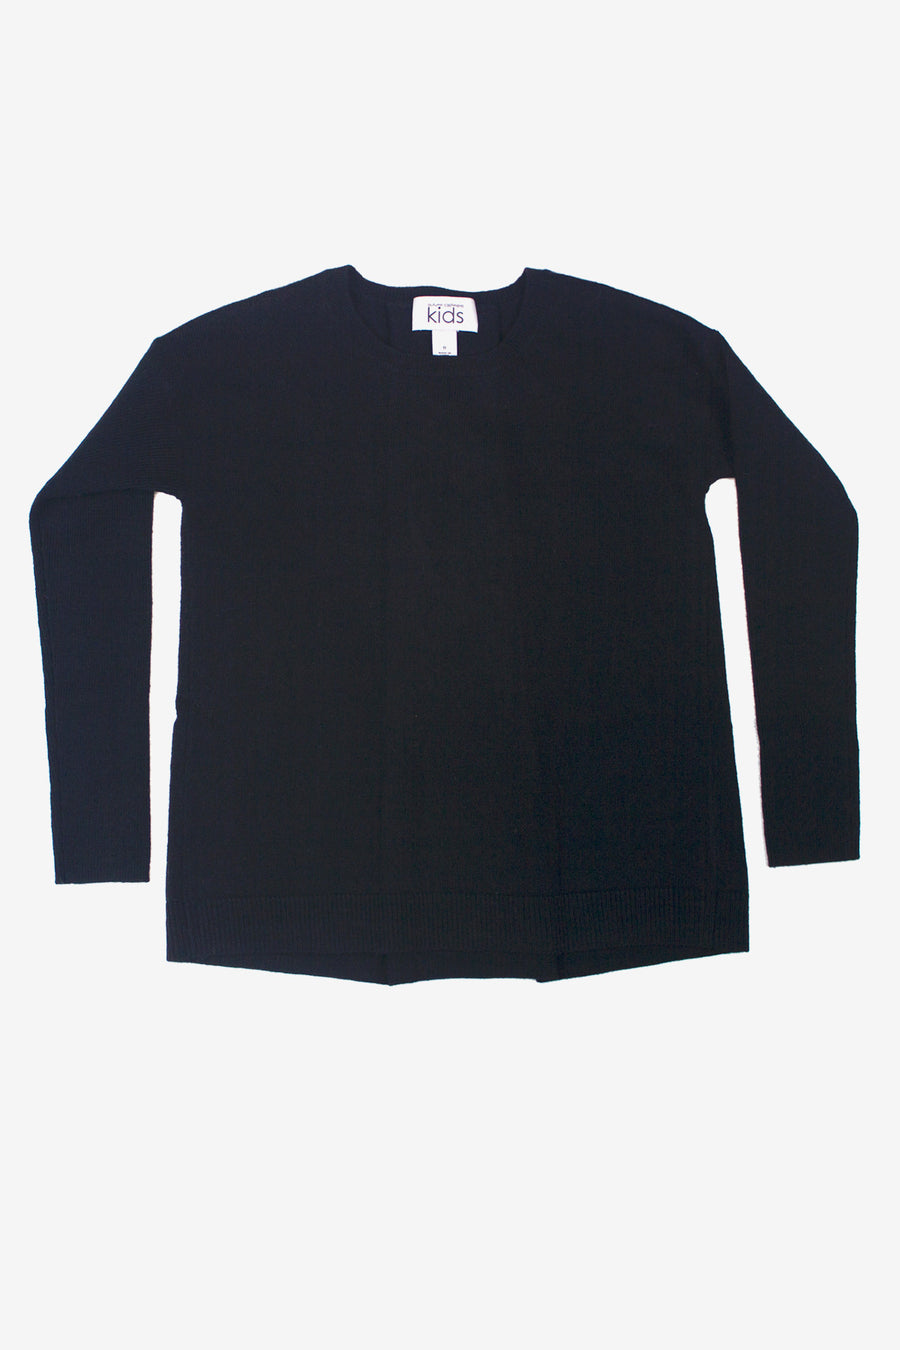 Autumn Cashmere Tie Pleat Back Sweater - Black